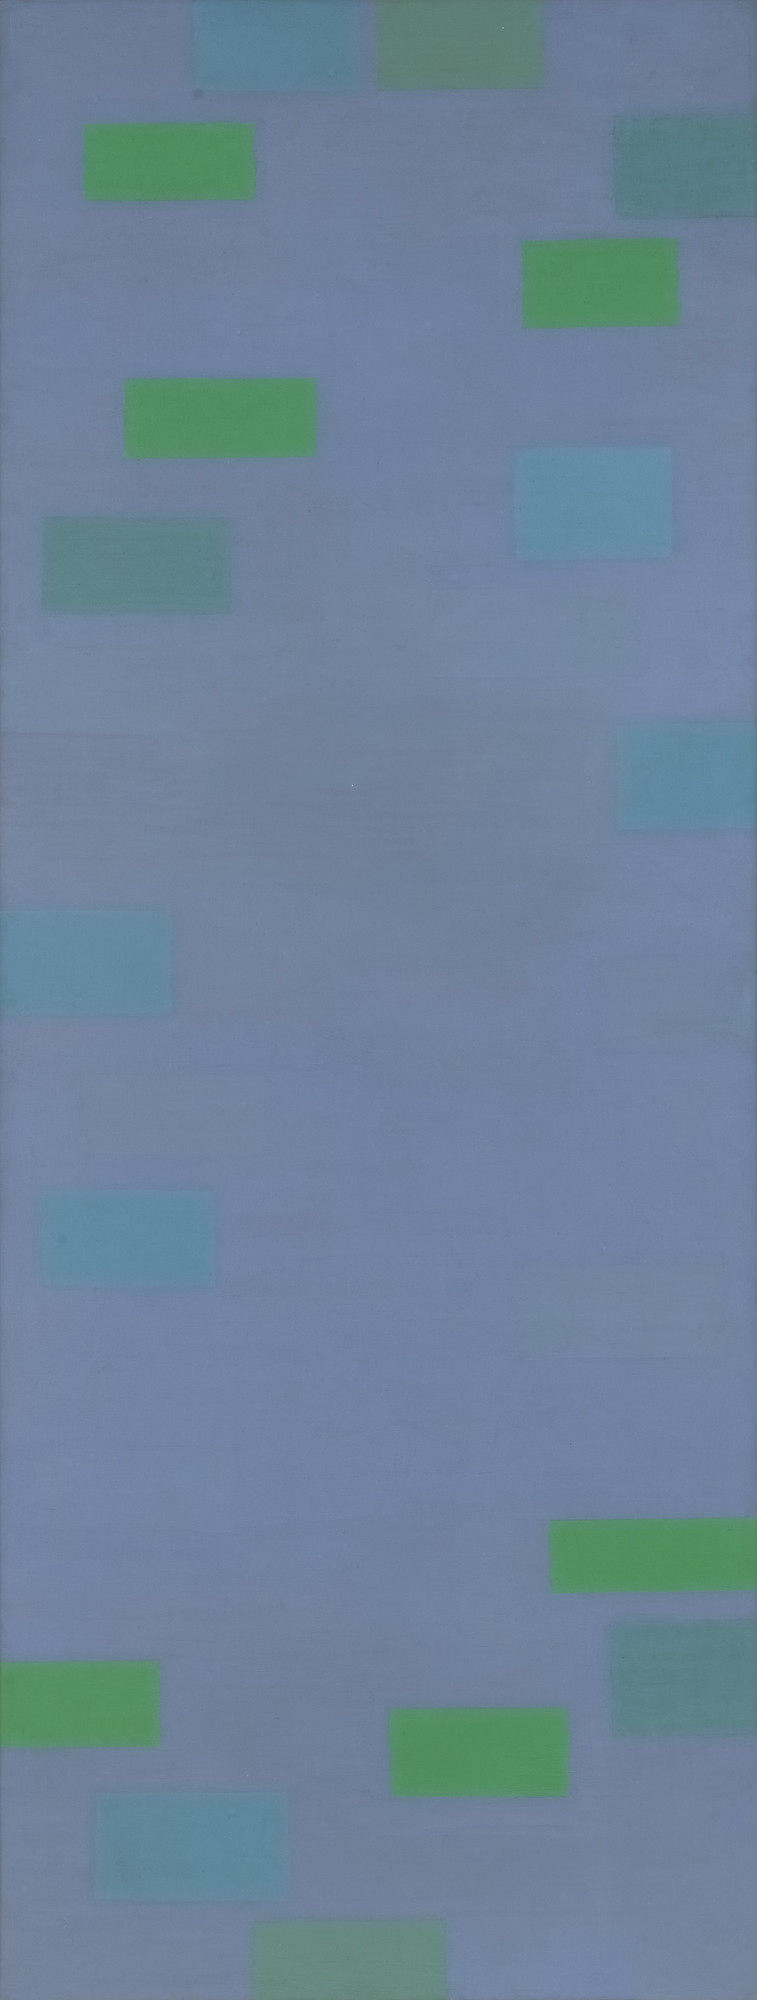 Ad Reinhardt. Abstract Painting (Blue). 1952